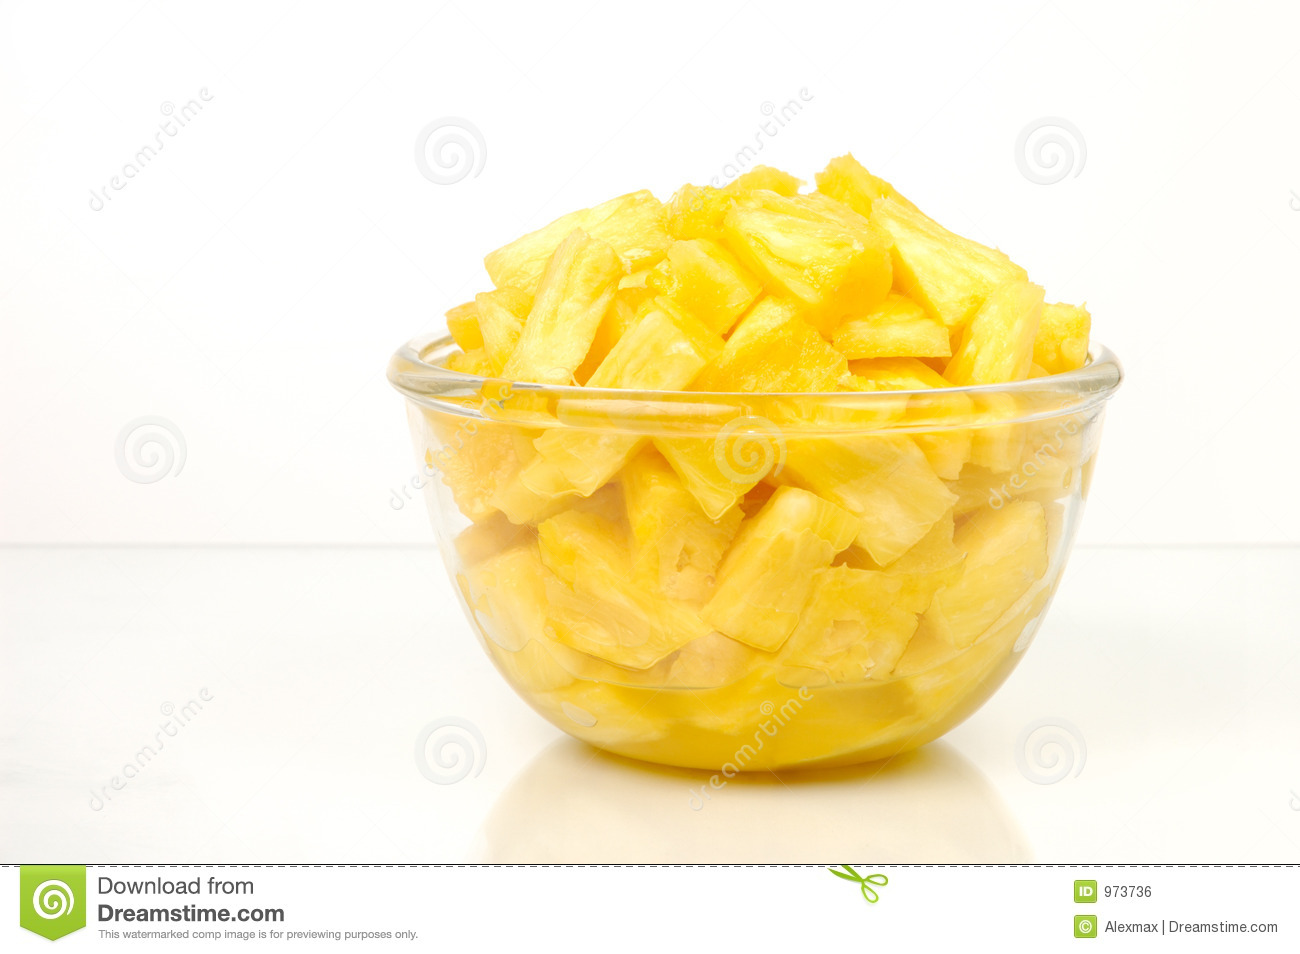 Pineapple Pieces Royalty Free Stock Image - Image: 973736